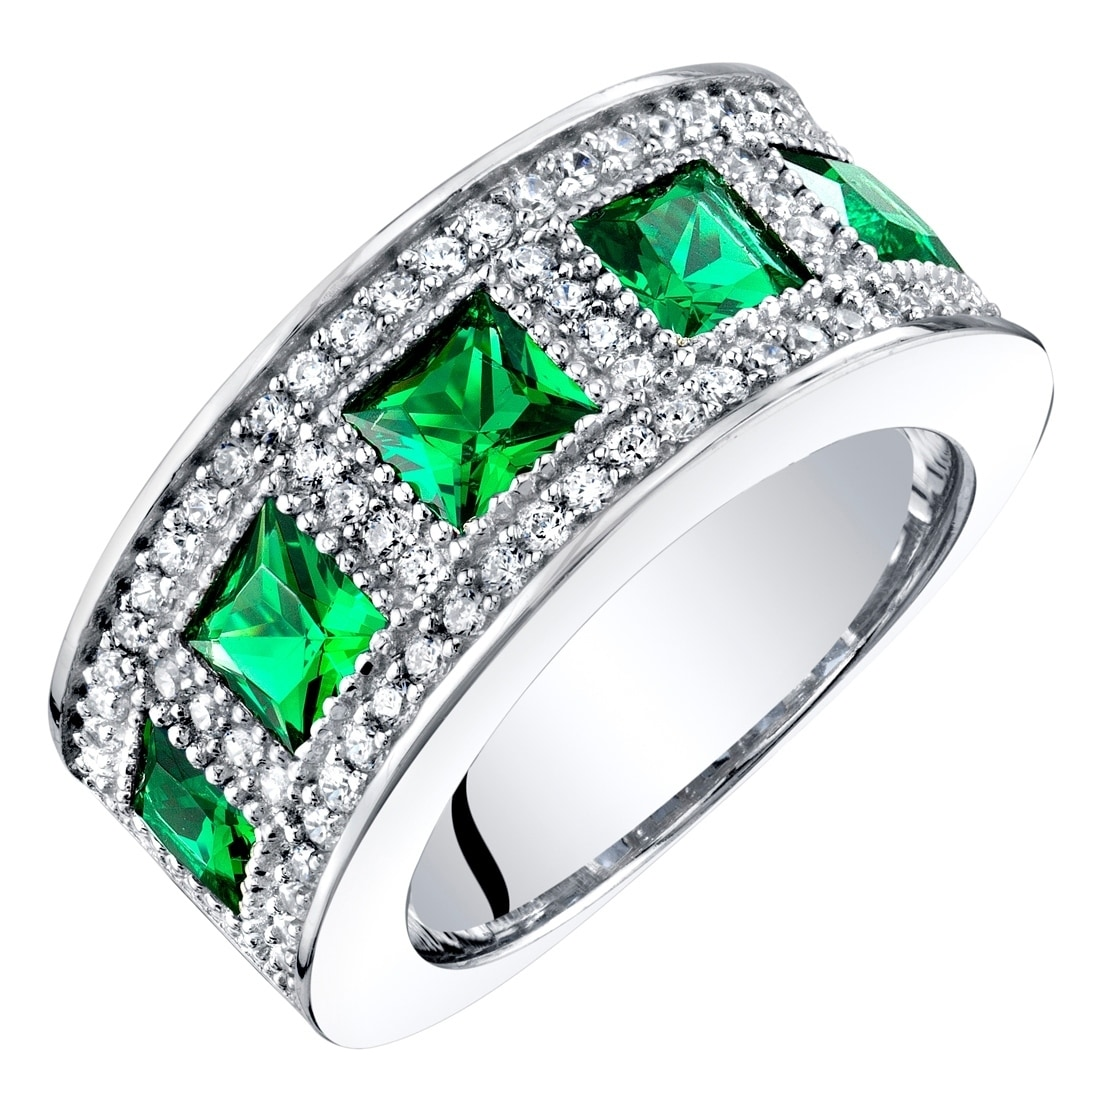 78d5a866b6ac9 Sterling Silver Princess Cut Simulated Emerald Anniversary Ring Band 2  Carats - Green